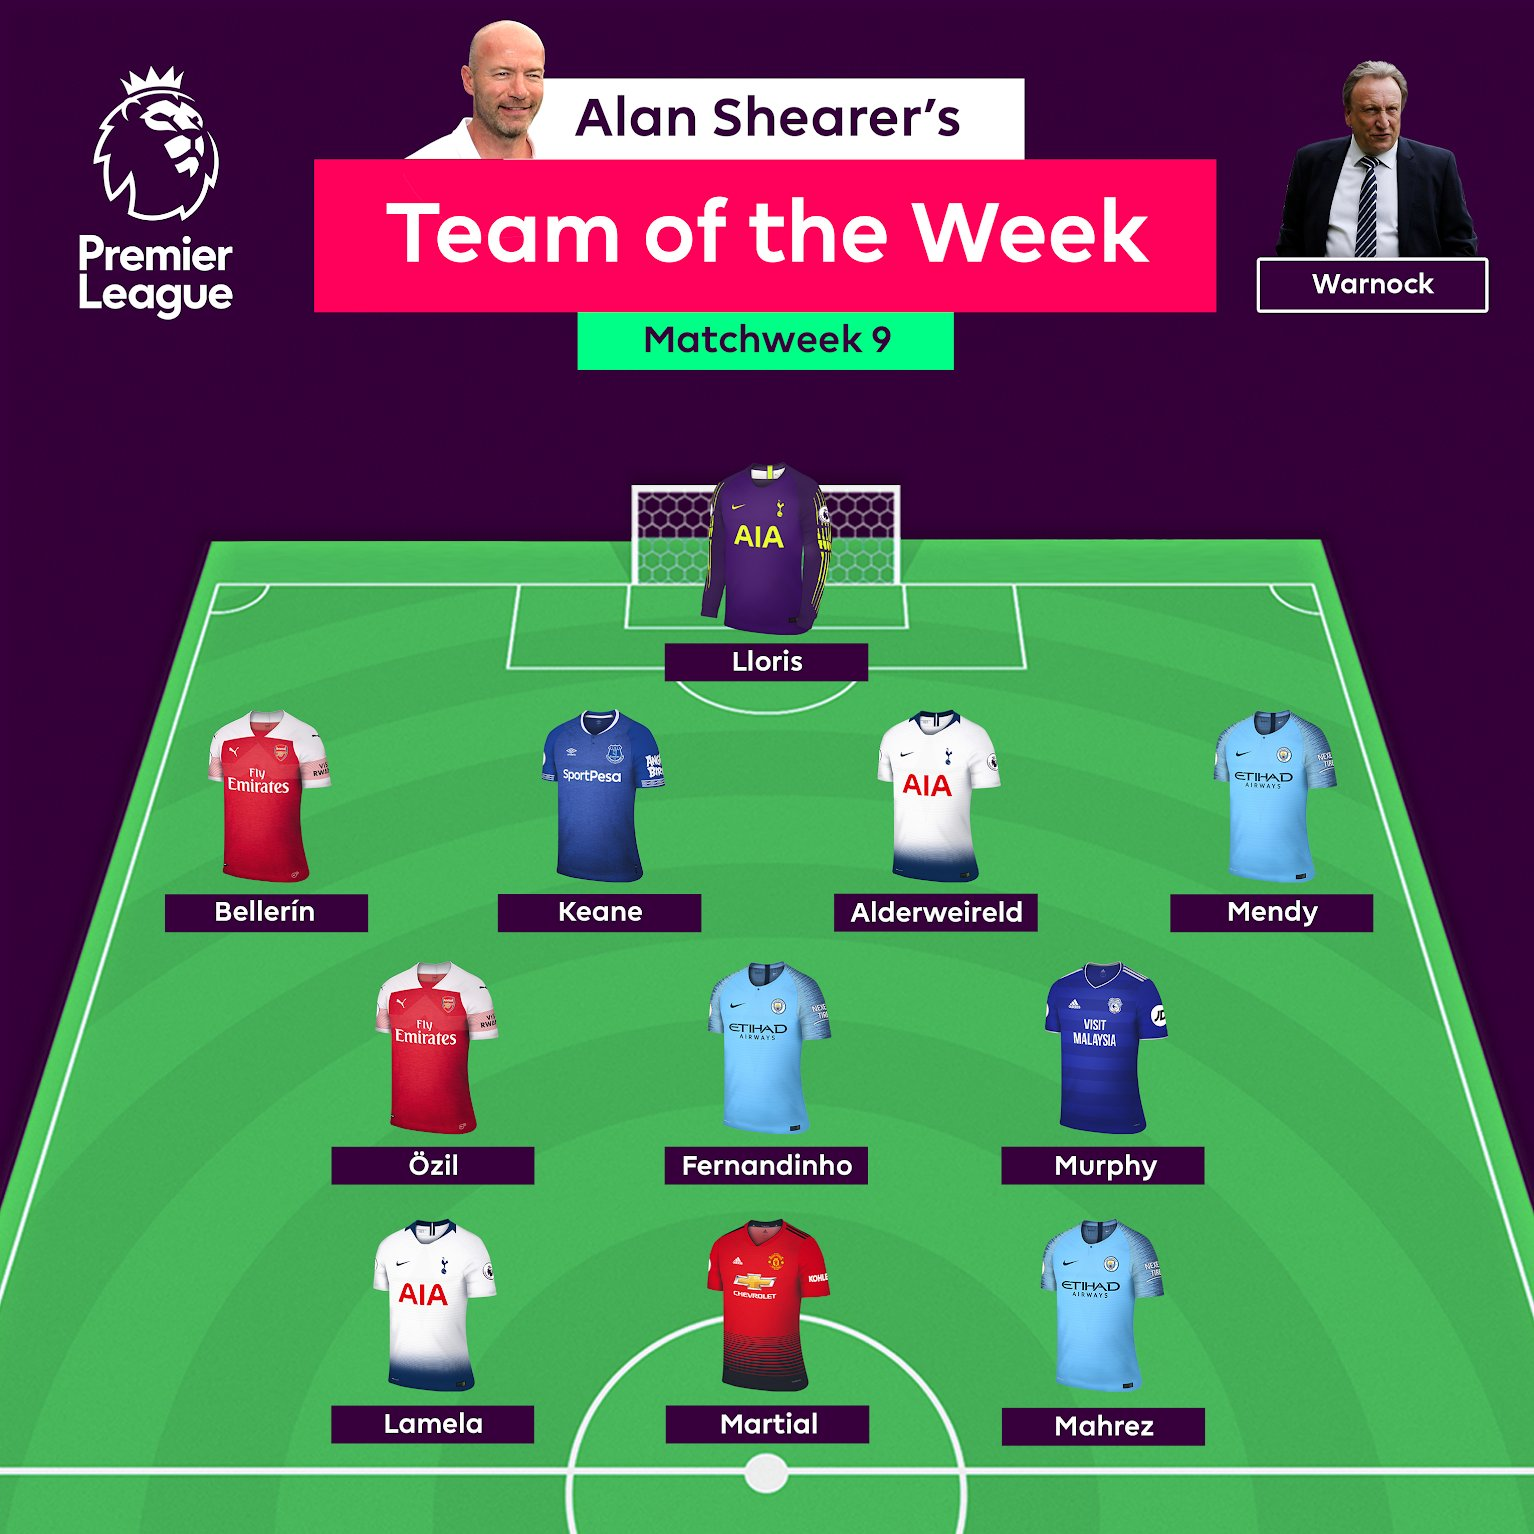 Some top performances in Matchweek 9 ��  @alanshearer's picked his best XI - agree? https://t.co/hLNbDsrRA2